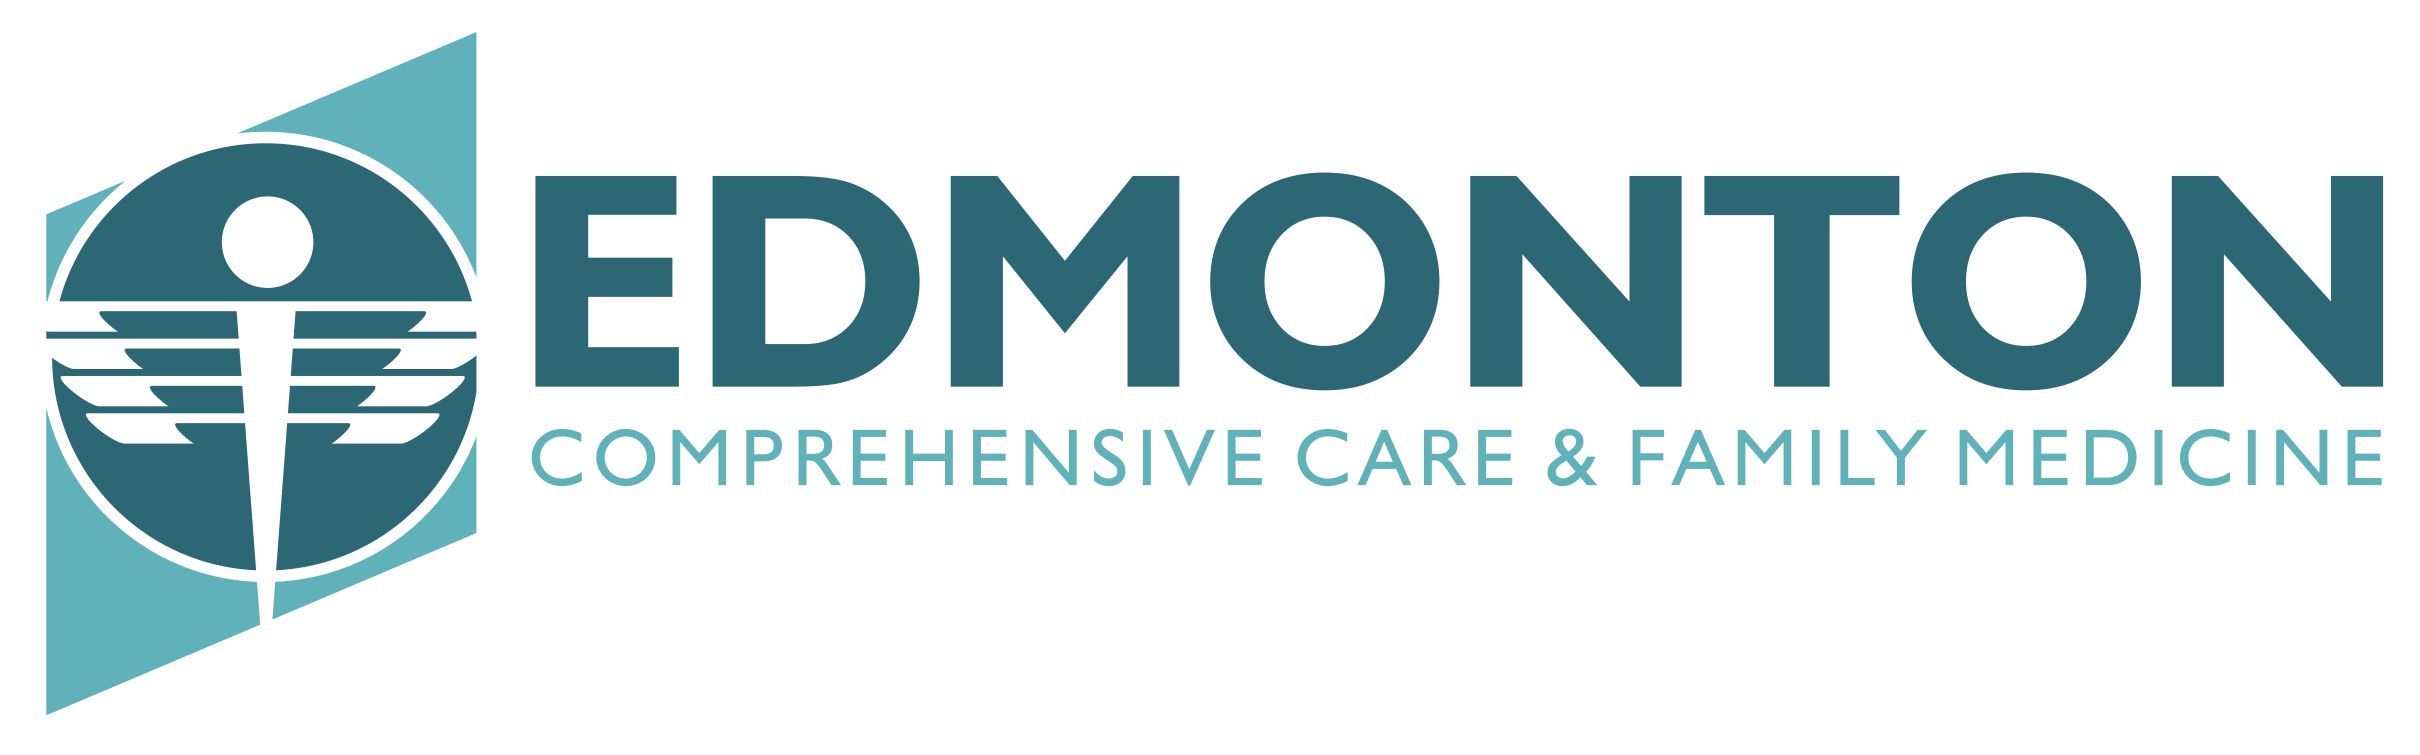 Edmonton Comprehensive Care & Family Medicine